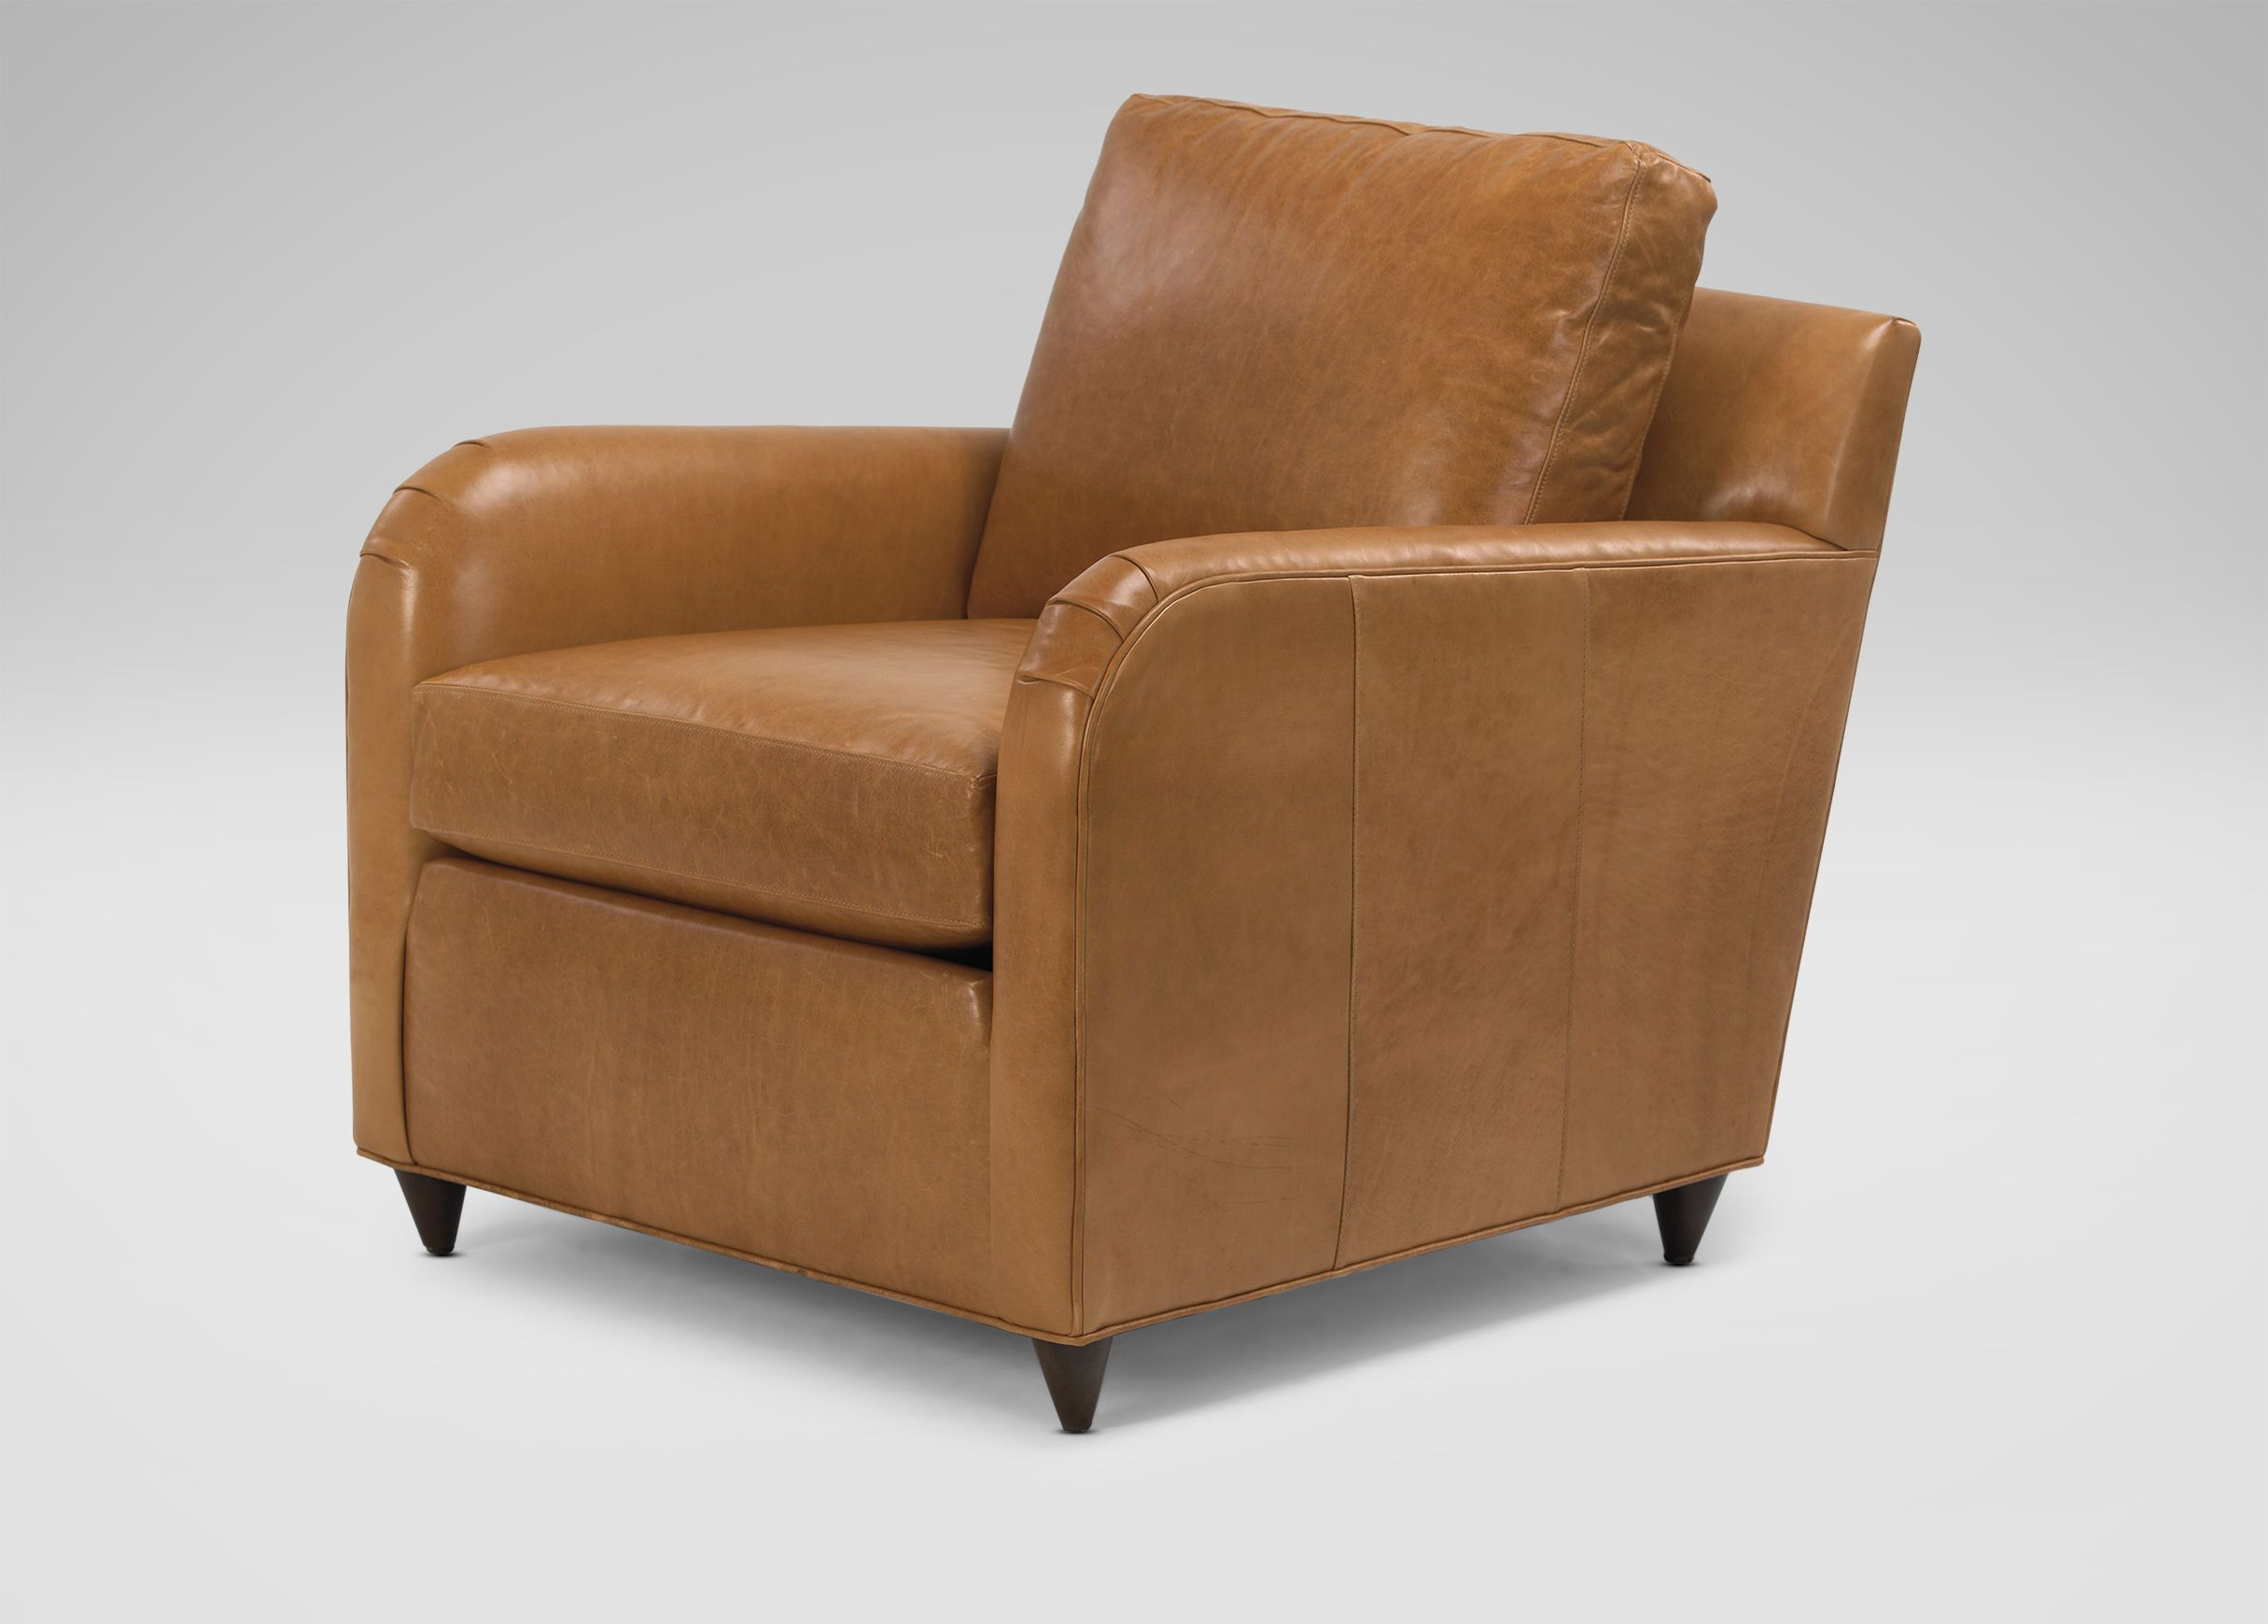 Awesome Greggy Leather Chair Astor Fawn For The Home Chair Machost Co Dining Chair Design Ideas Machostcouk